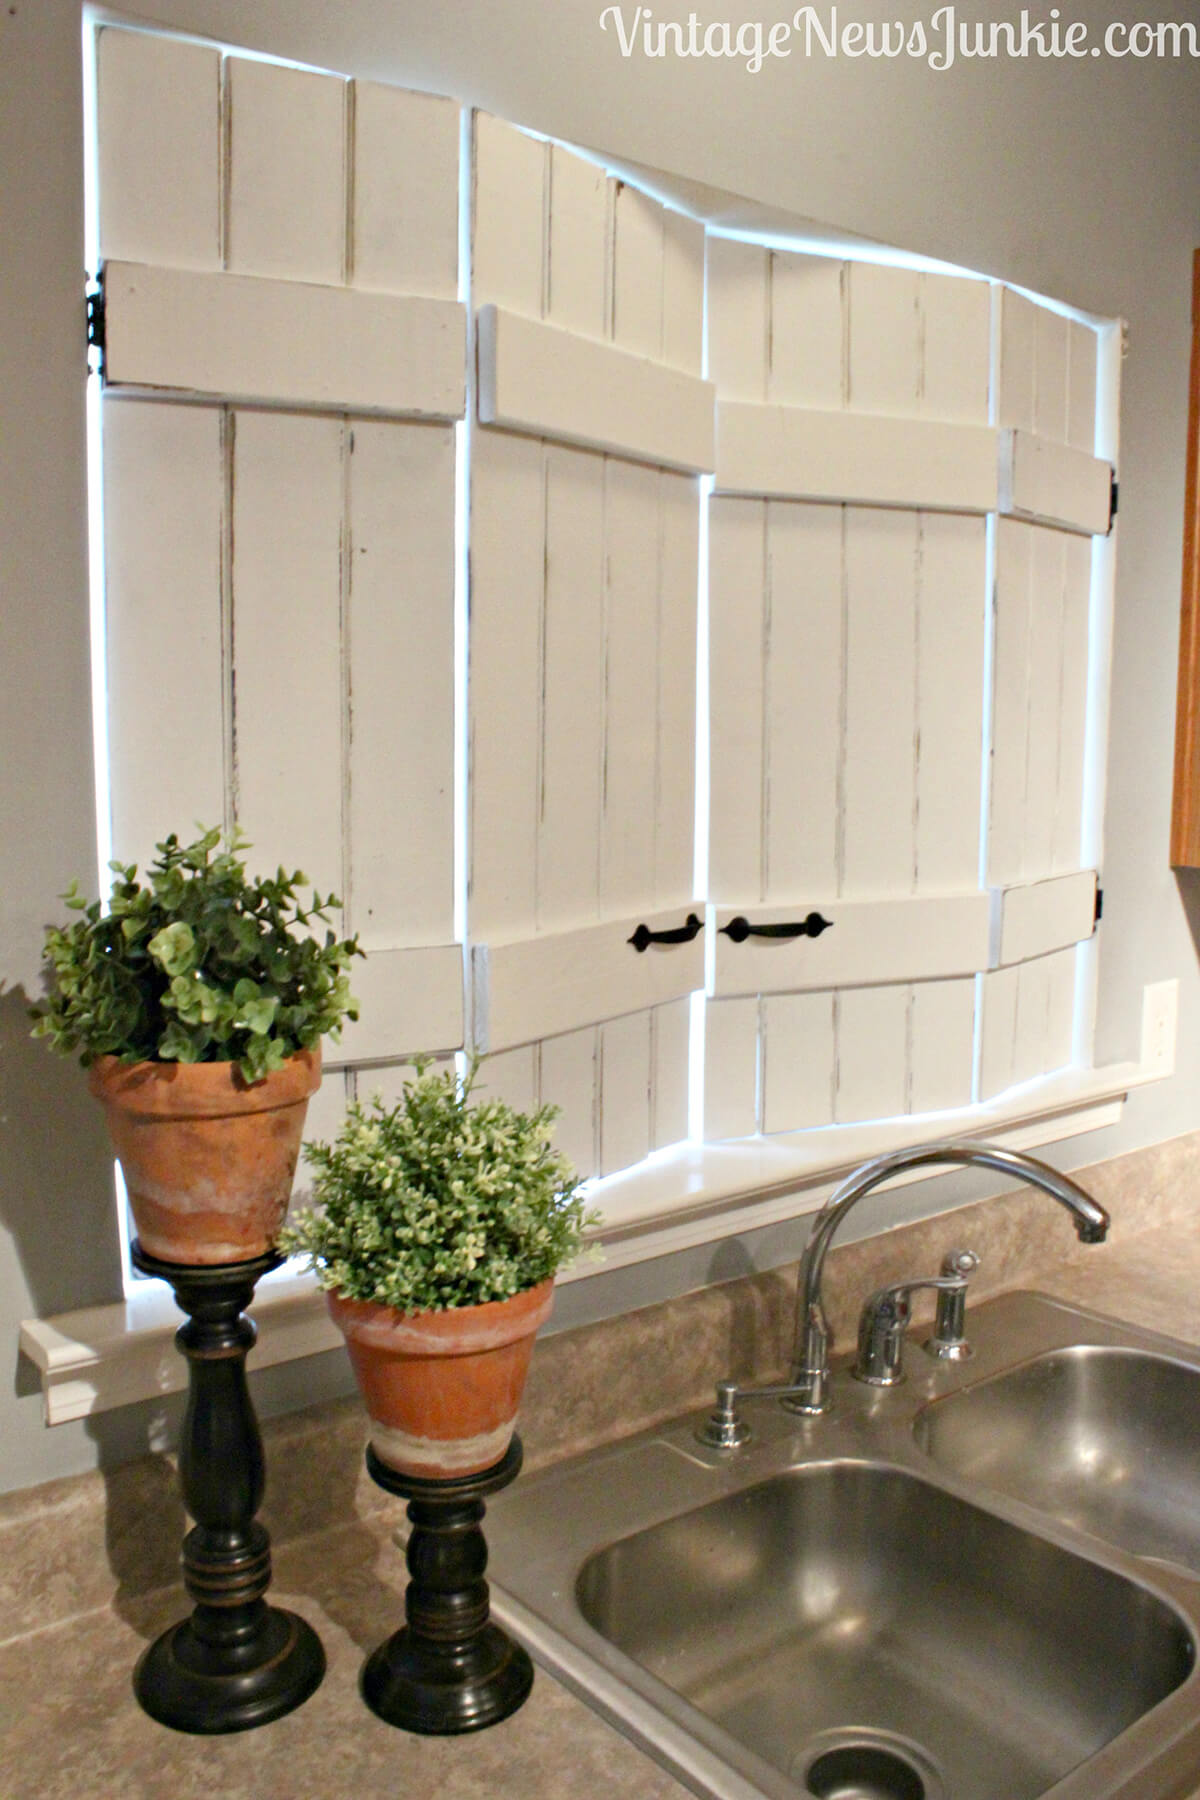 kitchen window shutters ideas for small rustic white in the homebnc